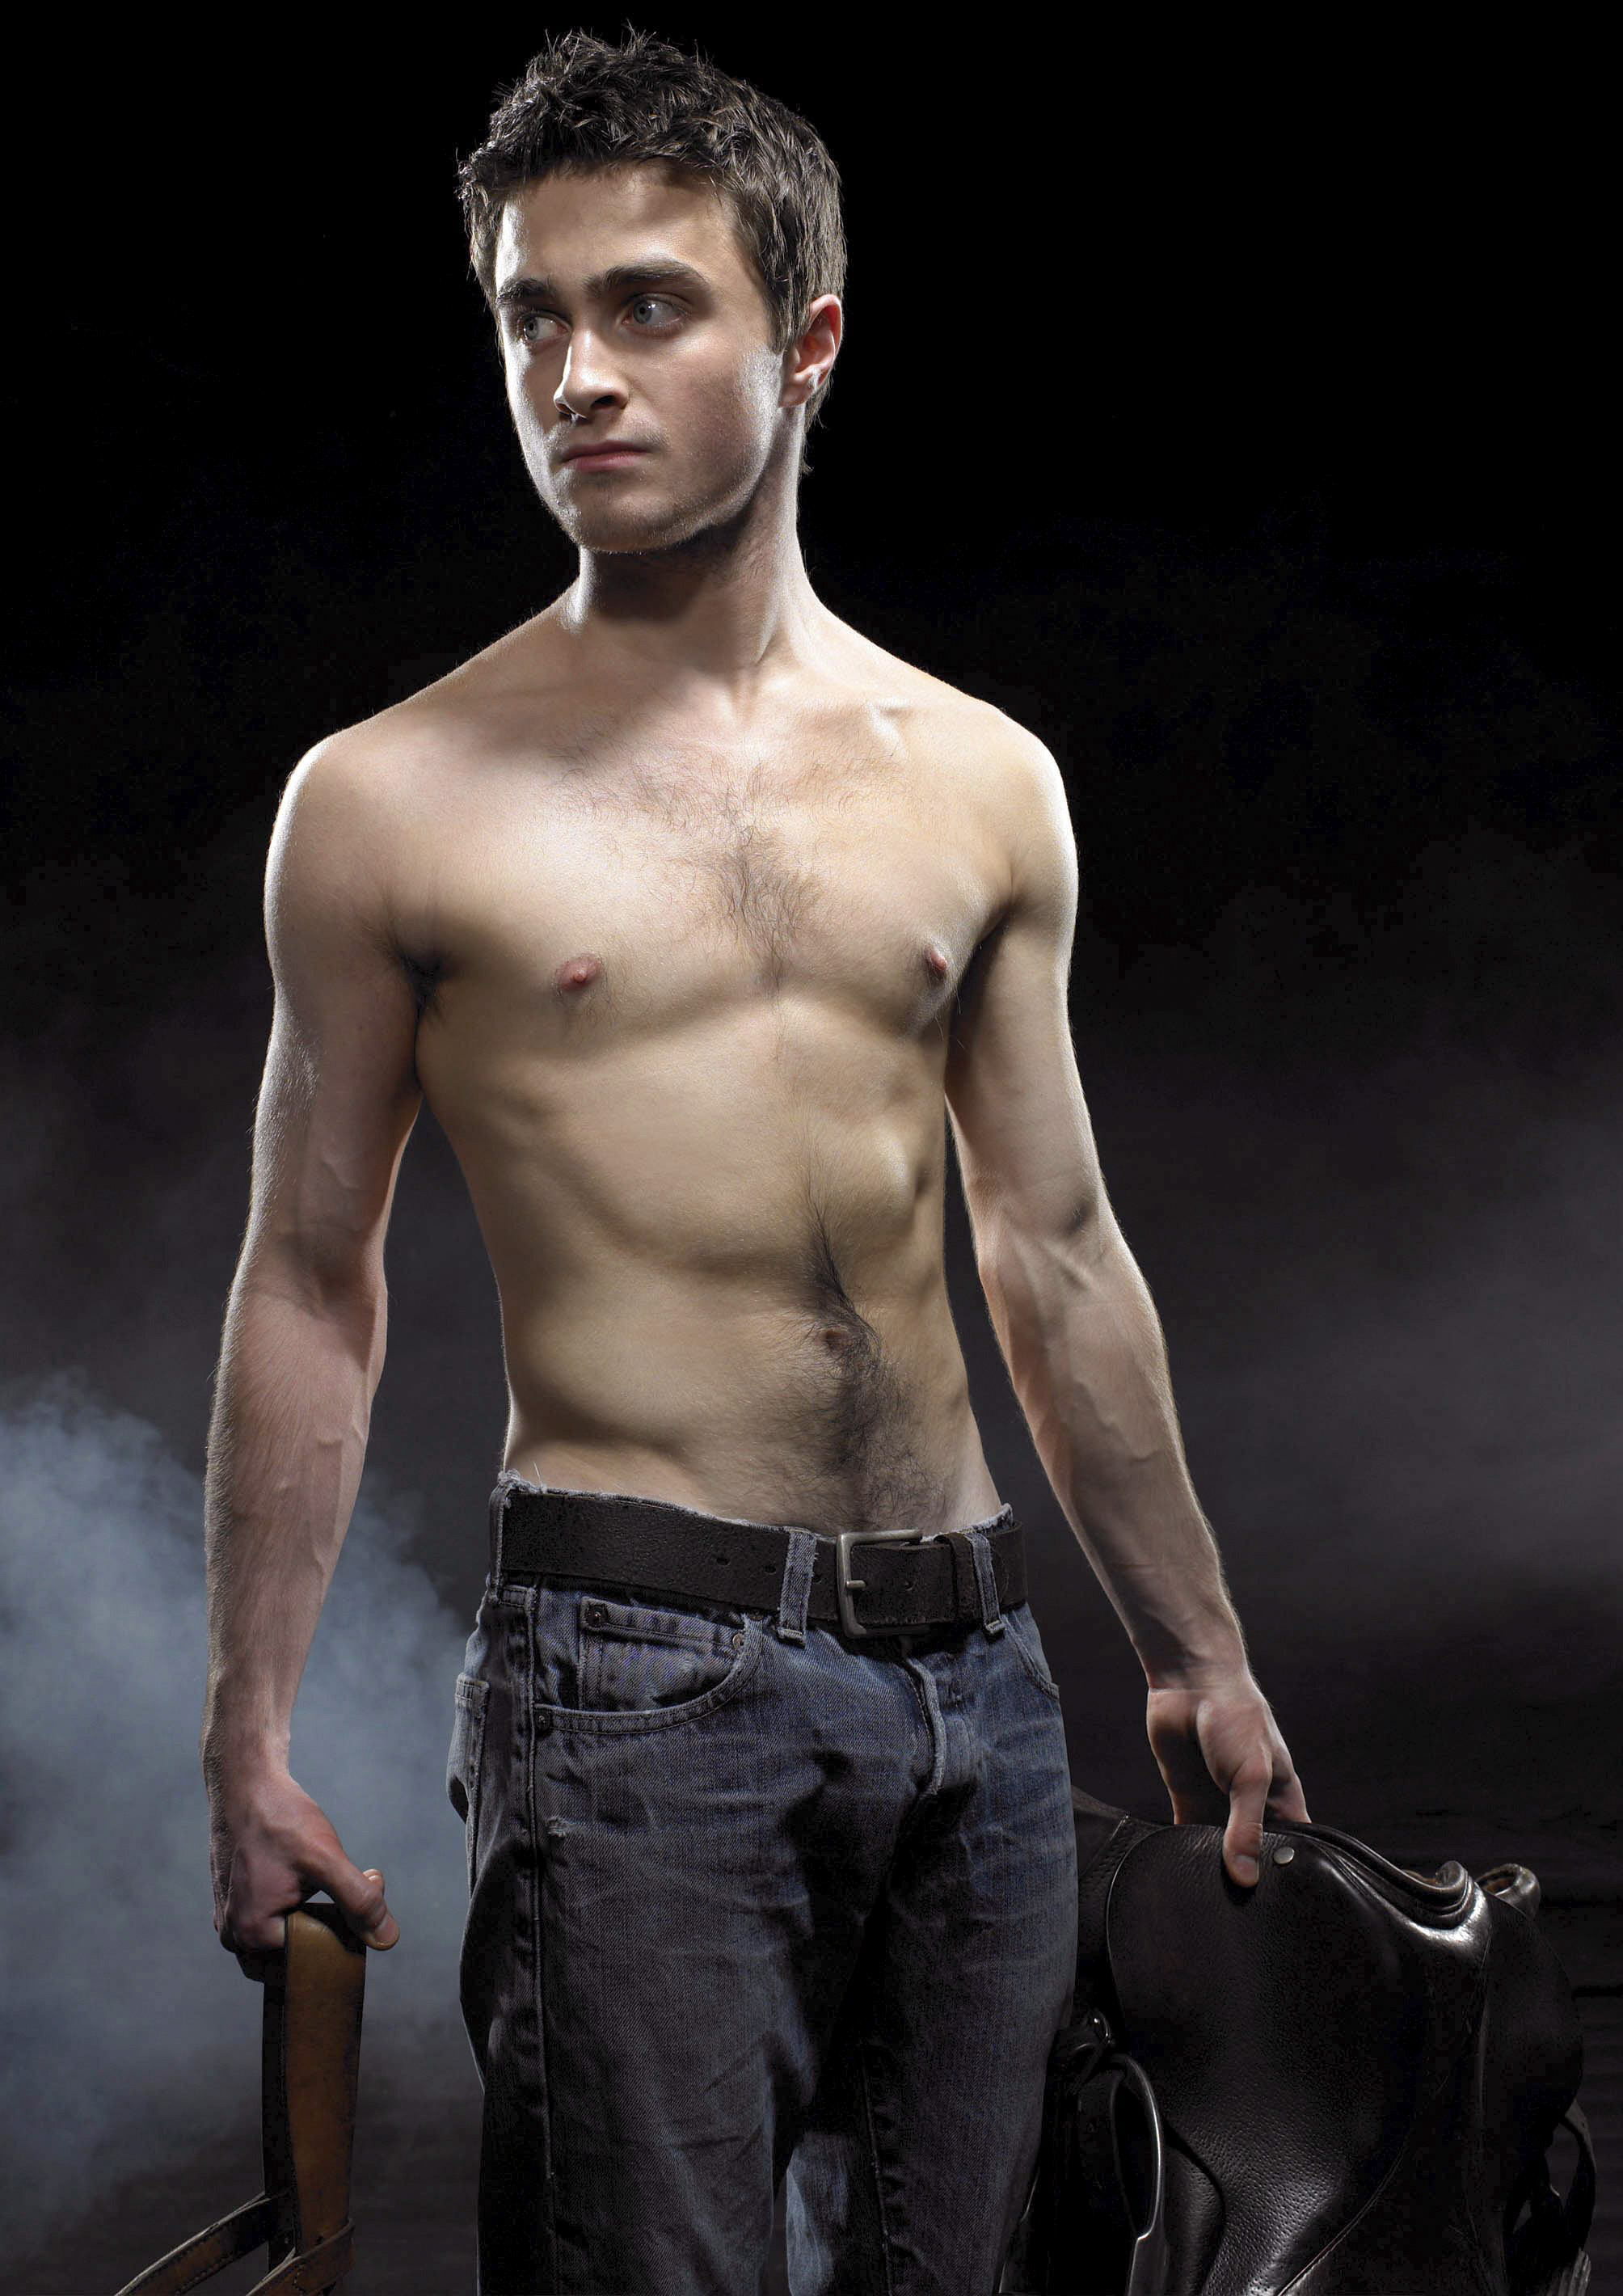 Picture about daniel jacob radcliffe all about man and male - Shirtless Daniel Radcliffe Shirtless Male Celebs Pinterest Daniel Radcliffe